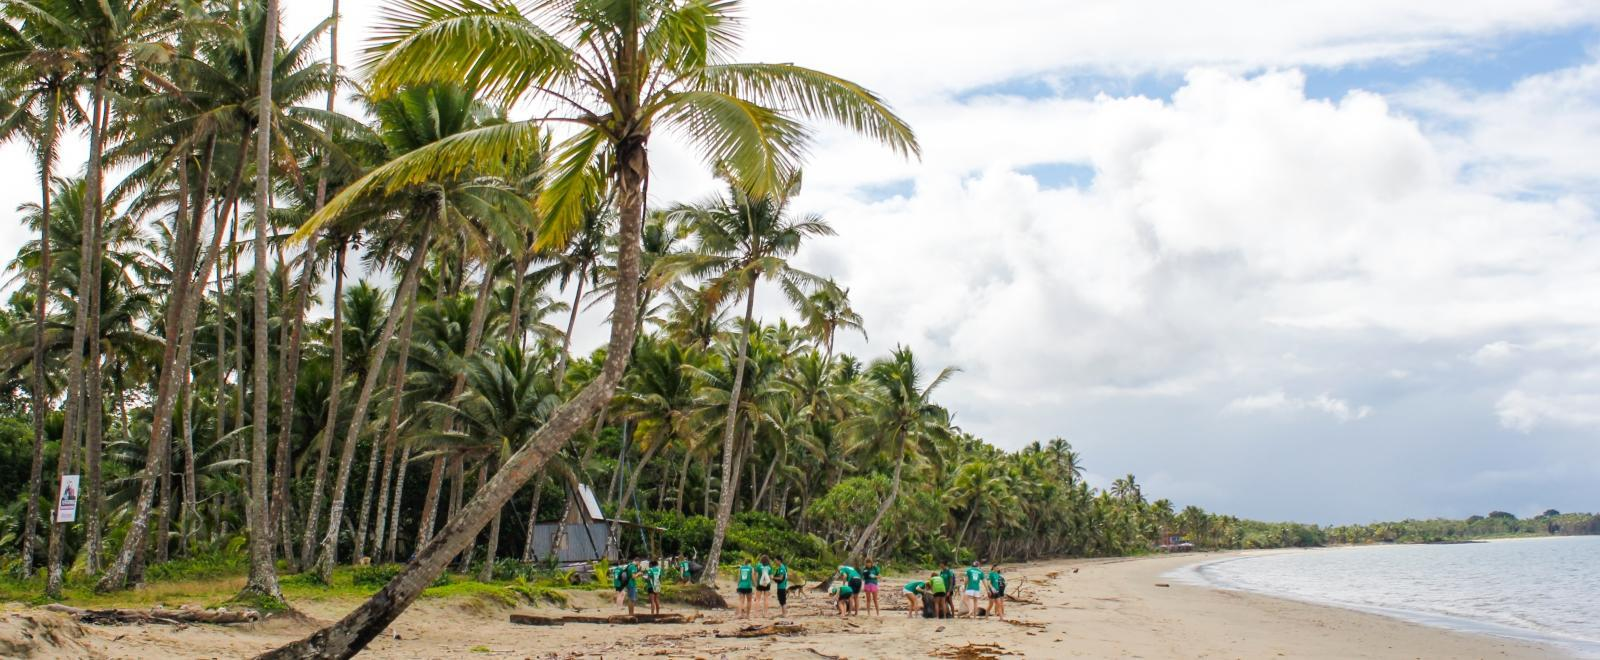 Volunteers in the South Pacific work together to clear rubbish off a beach in Fiji.